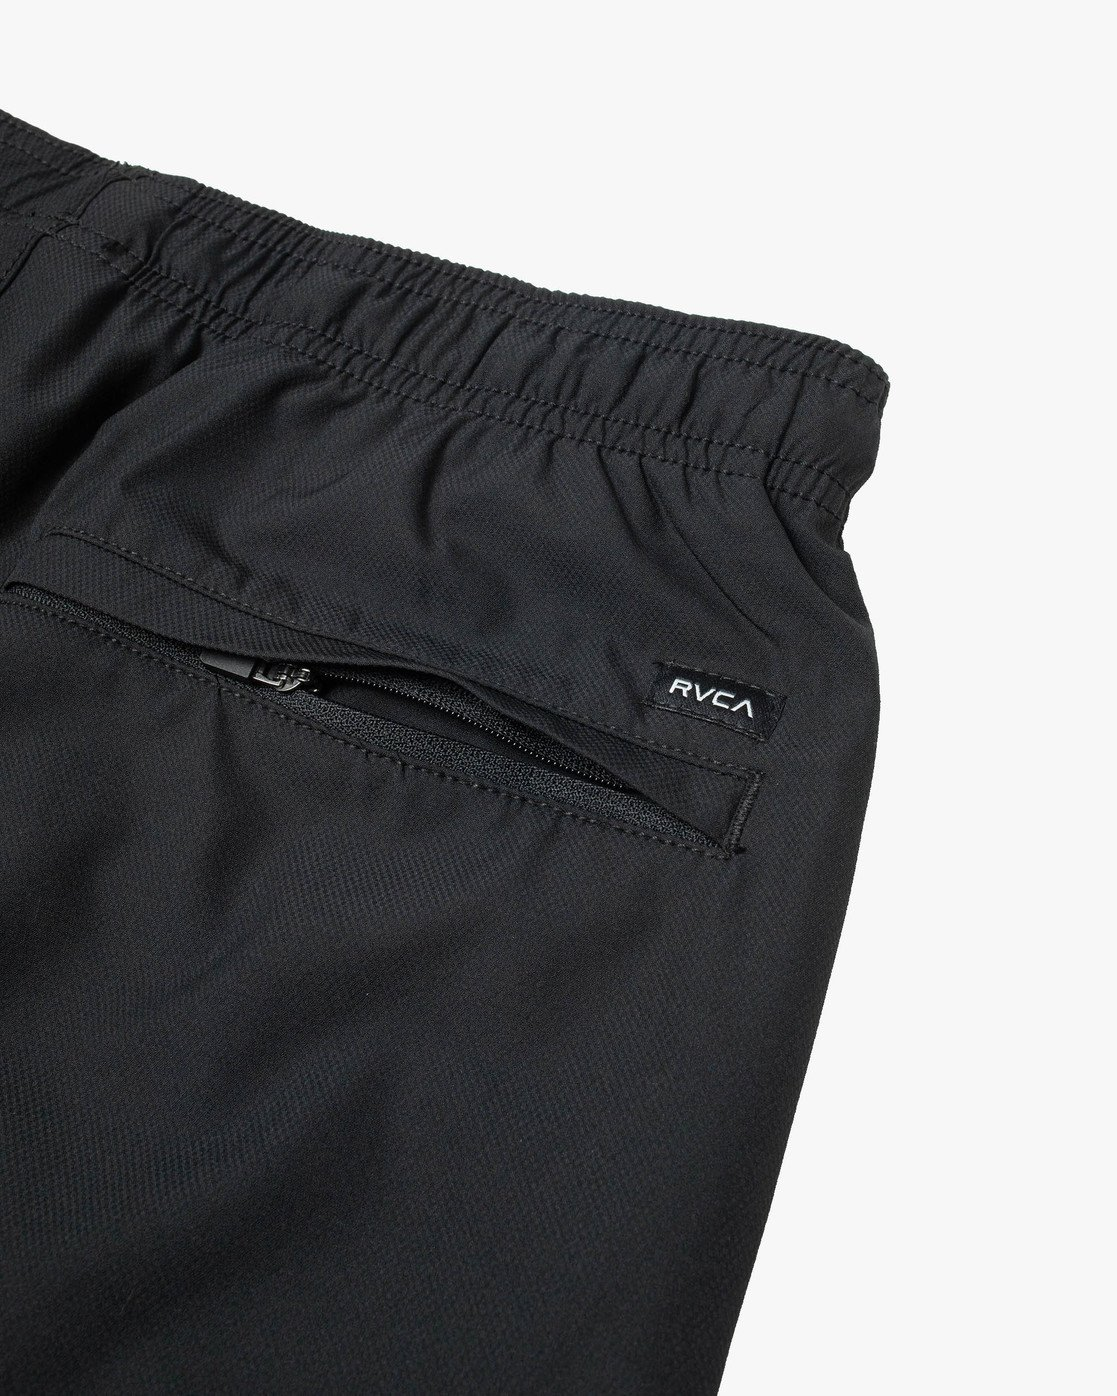 "11 YOGGER STRETCH ATHLETIC SHORTS 17"" Black V2103RYS RVCA"